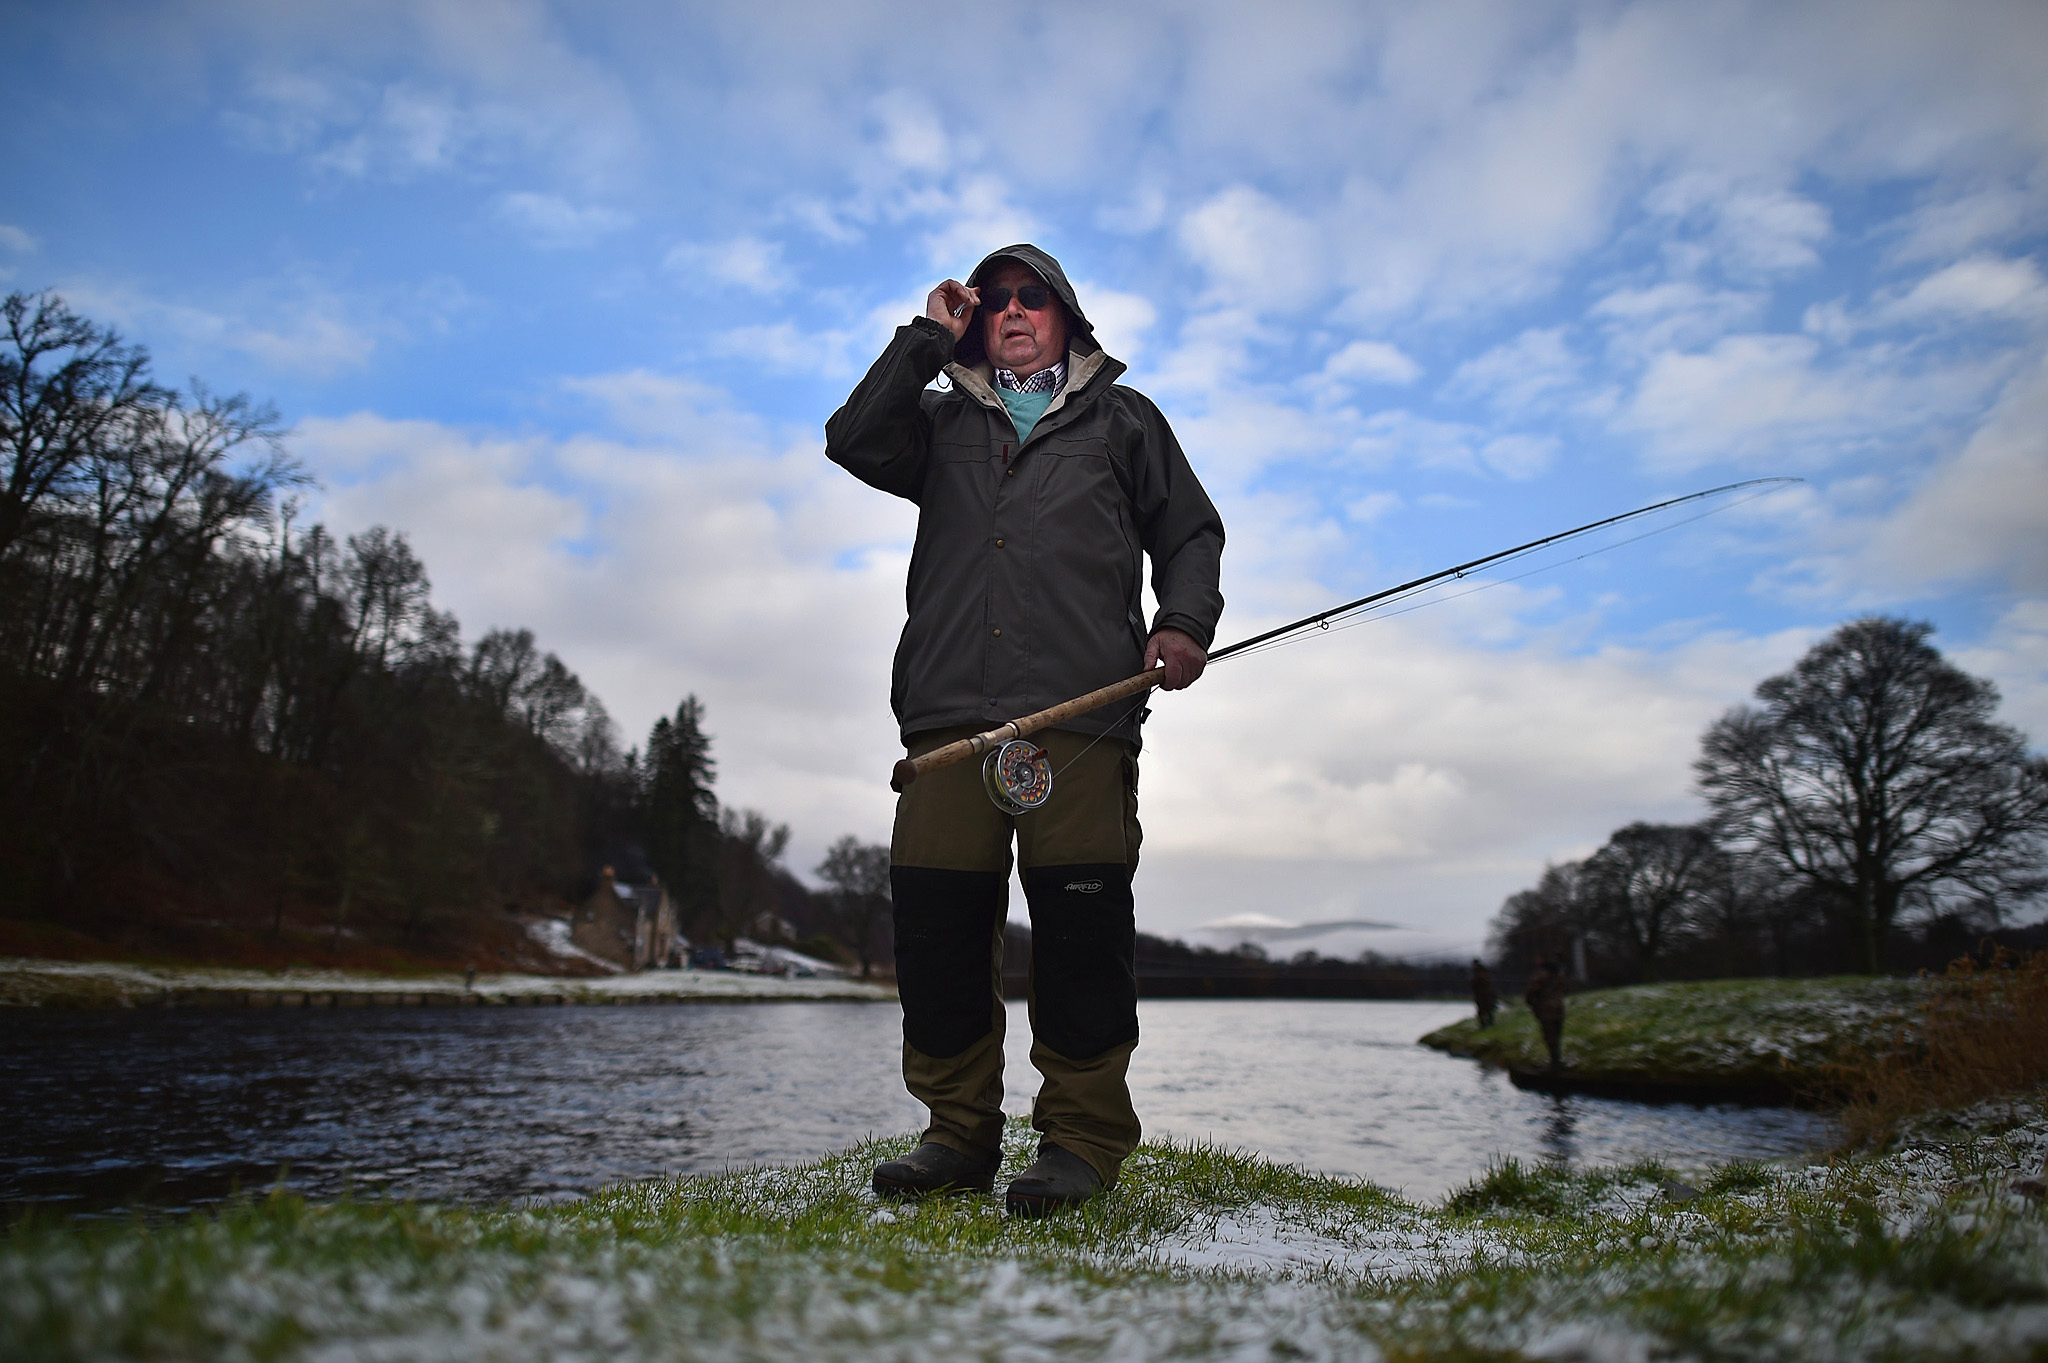 An angler holds his fishing pole during the opening day of the salmon season on the River Spey on February 11, 2016 in Aberlour, Scotland. The annual opening day ceremony took place at Penny Bridge, with the traditional pouring of a bottle of Aberlour twelve year old single malt Scotch whisky into the river.  (Photo by Jeff J Mitchell/Getty Images)